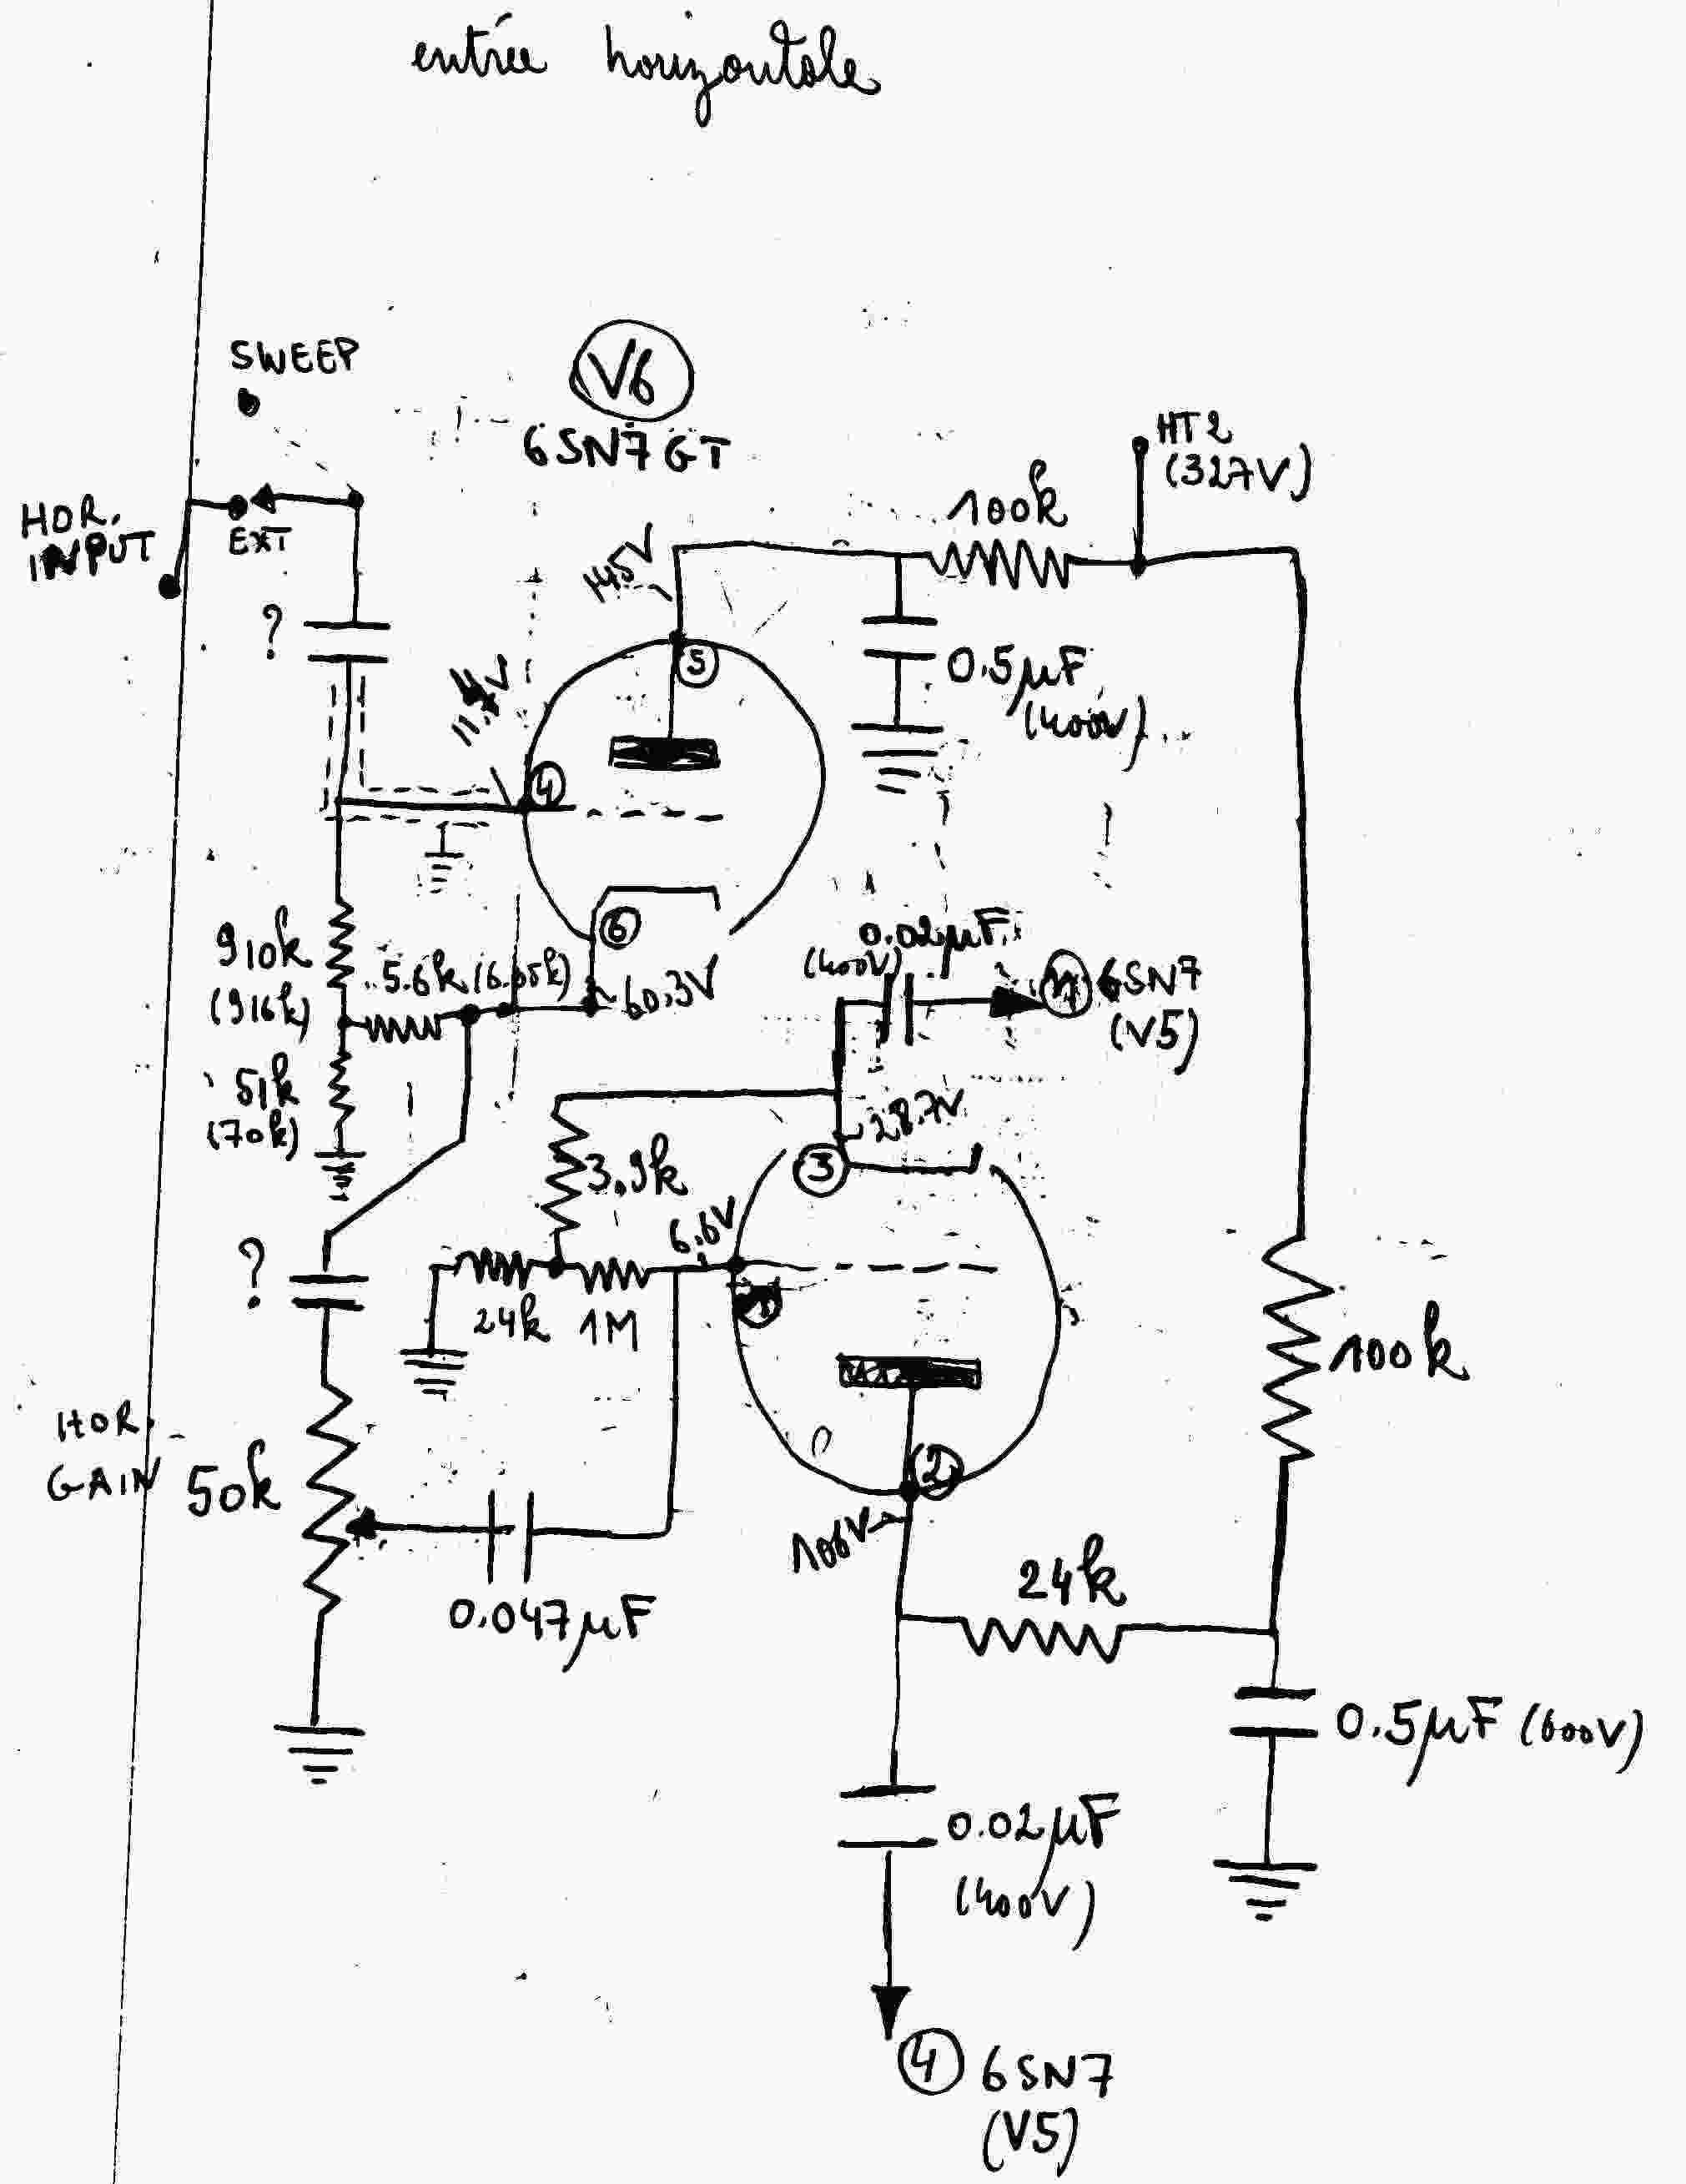 tsf auto electrical wiring diagramWiring Diagram Diagram Parts List For Model 502255381 Craftsman #13